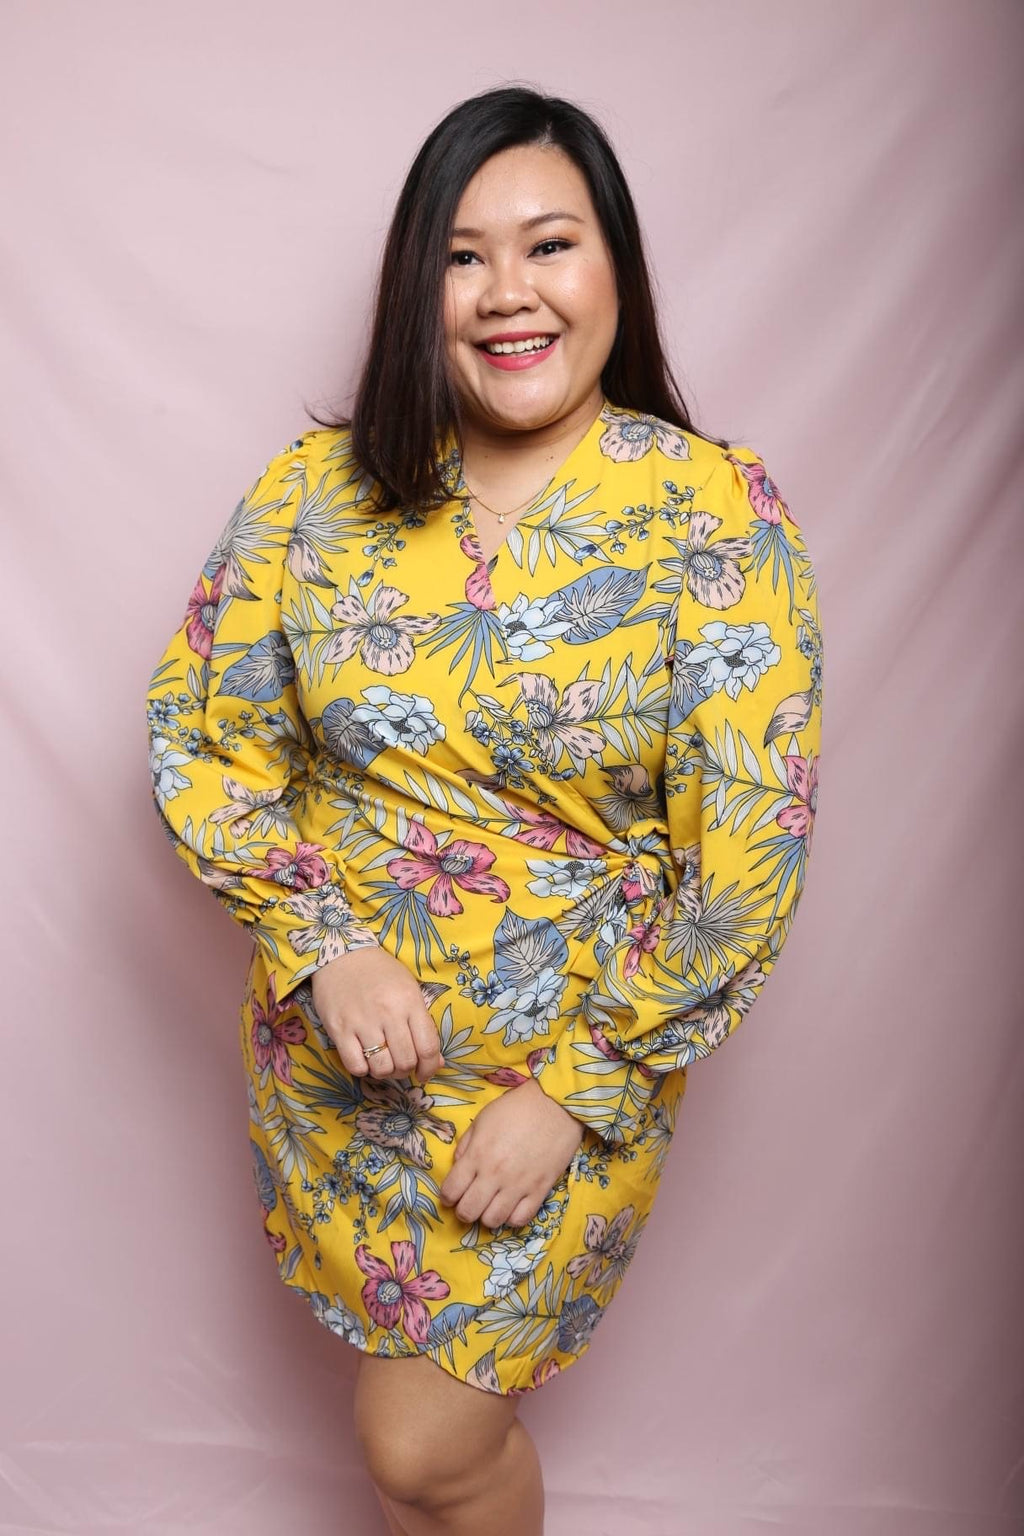 Botanical Wrap Dress (Plus Size Dress)